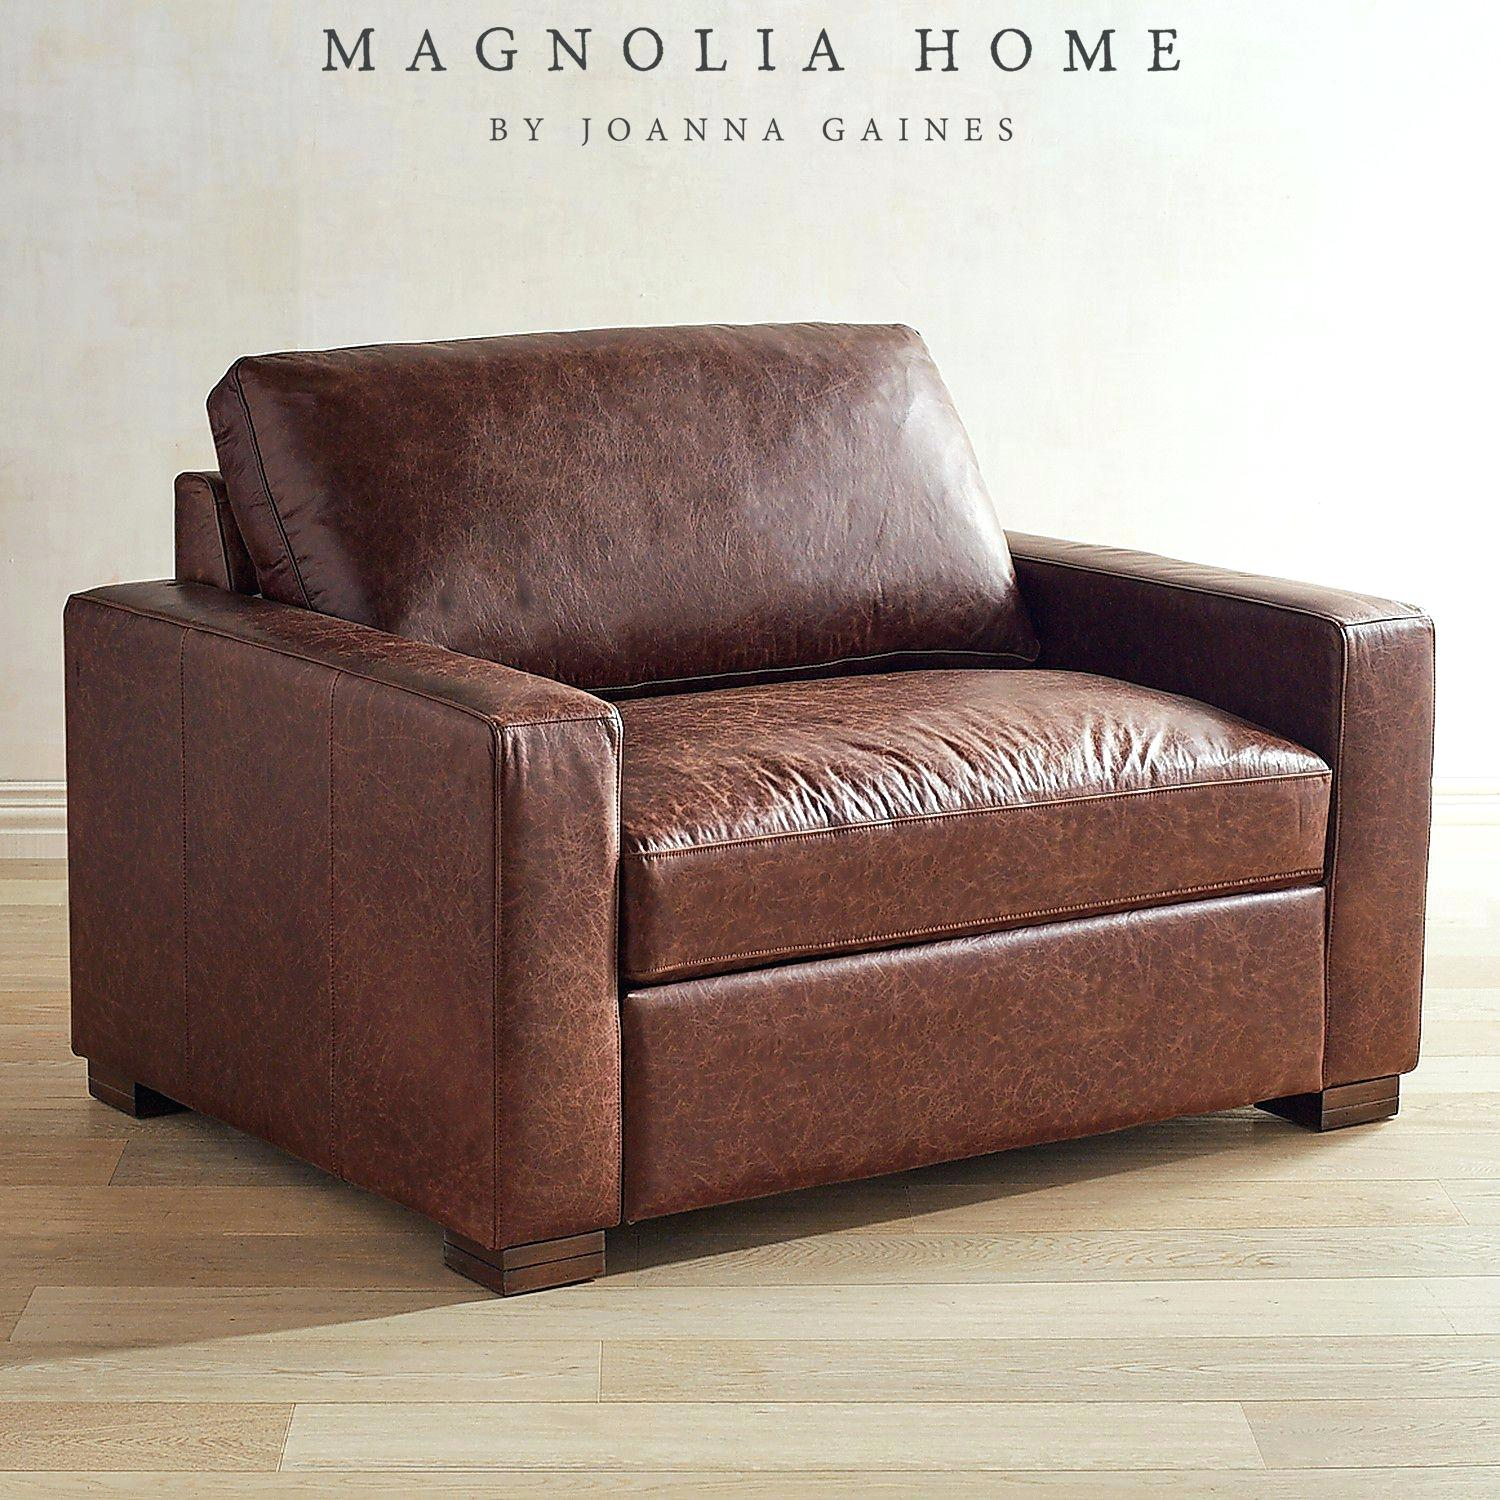 Industrial Pier Beam Coffee Tablemagnolia Home Sofa Homestead For Magnolia Home Homestead Sofa Chairs By Joanna Gaines (Image 8 of 25)